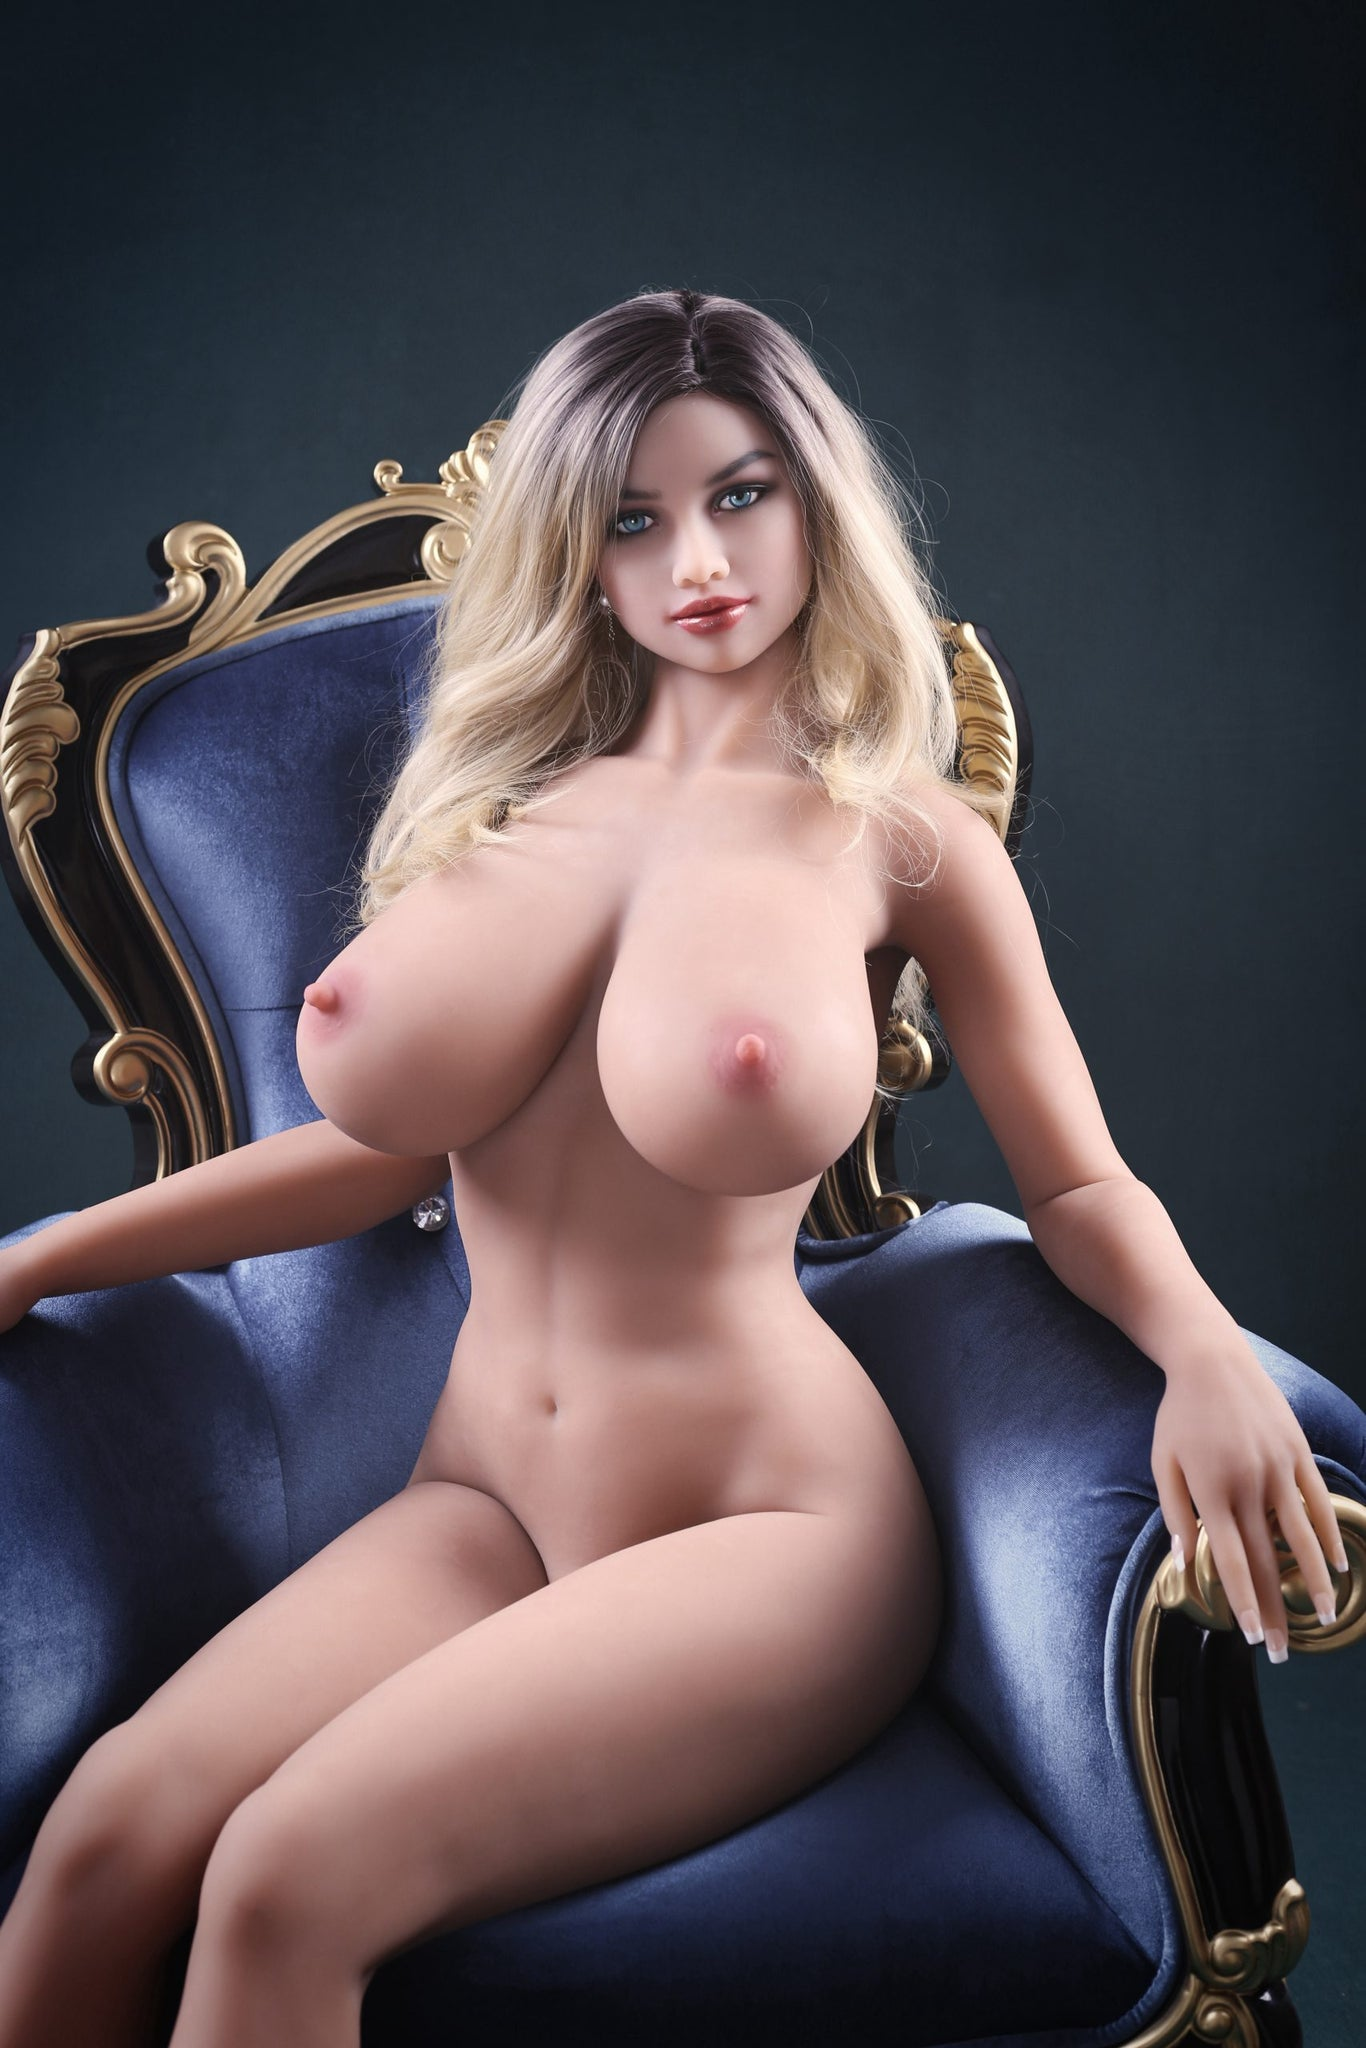 brit 170cm af blonde giant massive tits athletic tpe sex doll(9)